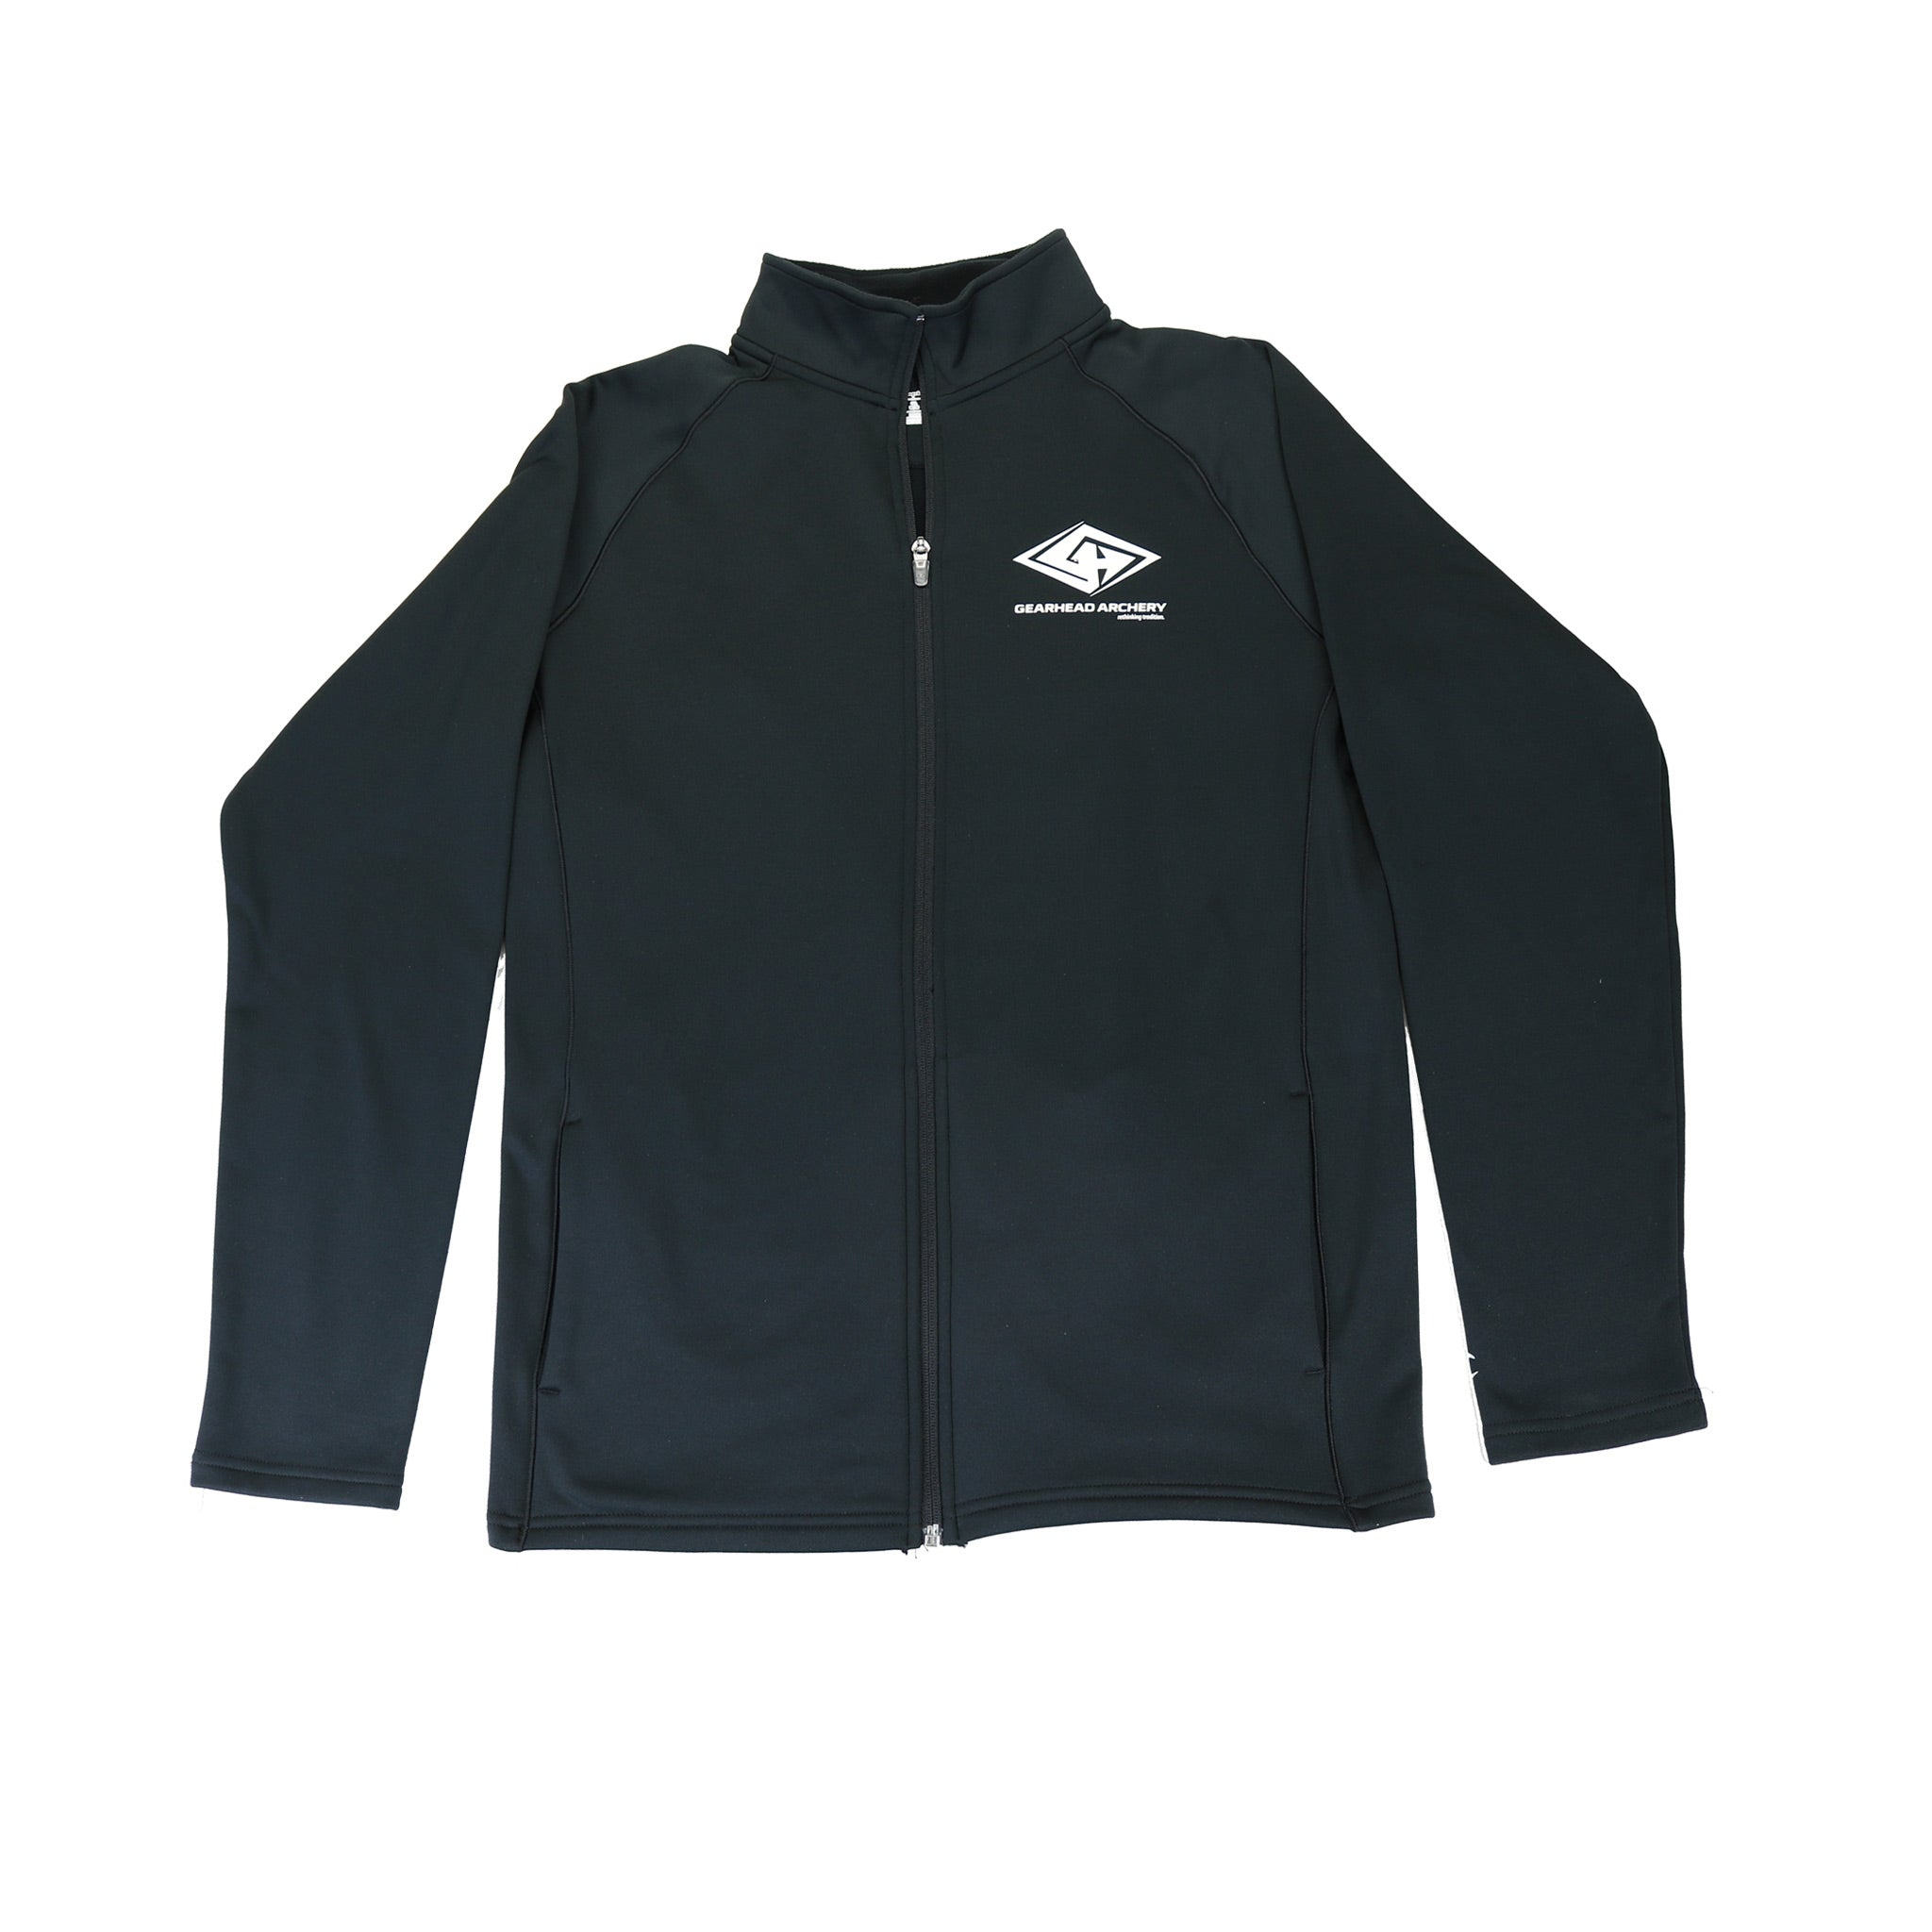 GEARHEAD BLACK CHAMPION JACKET